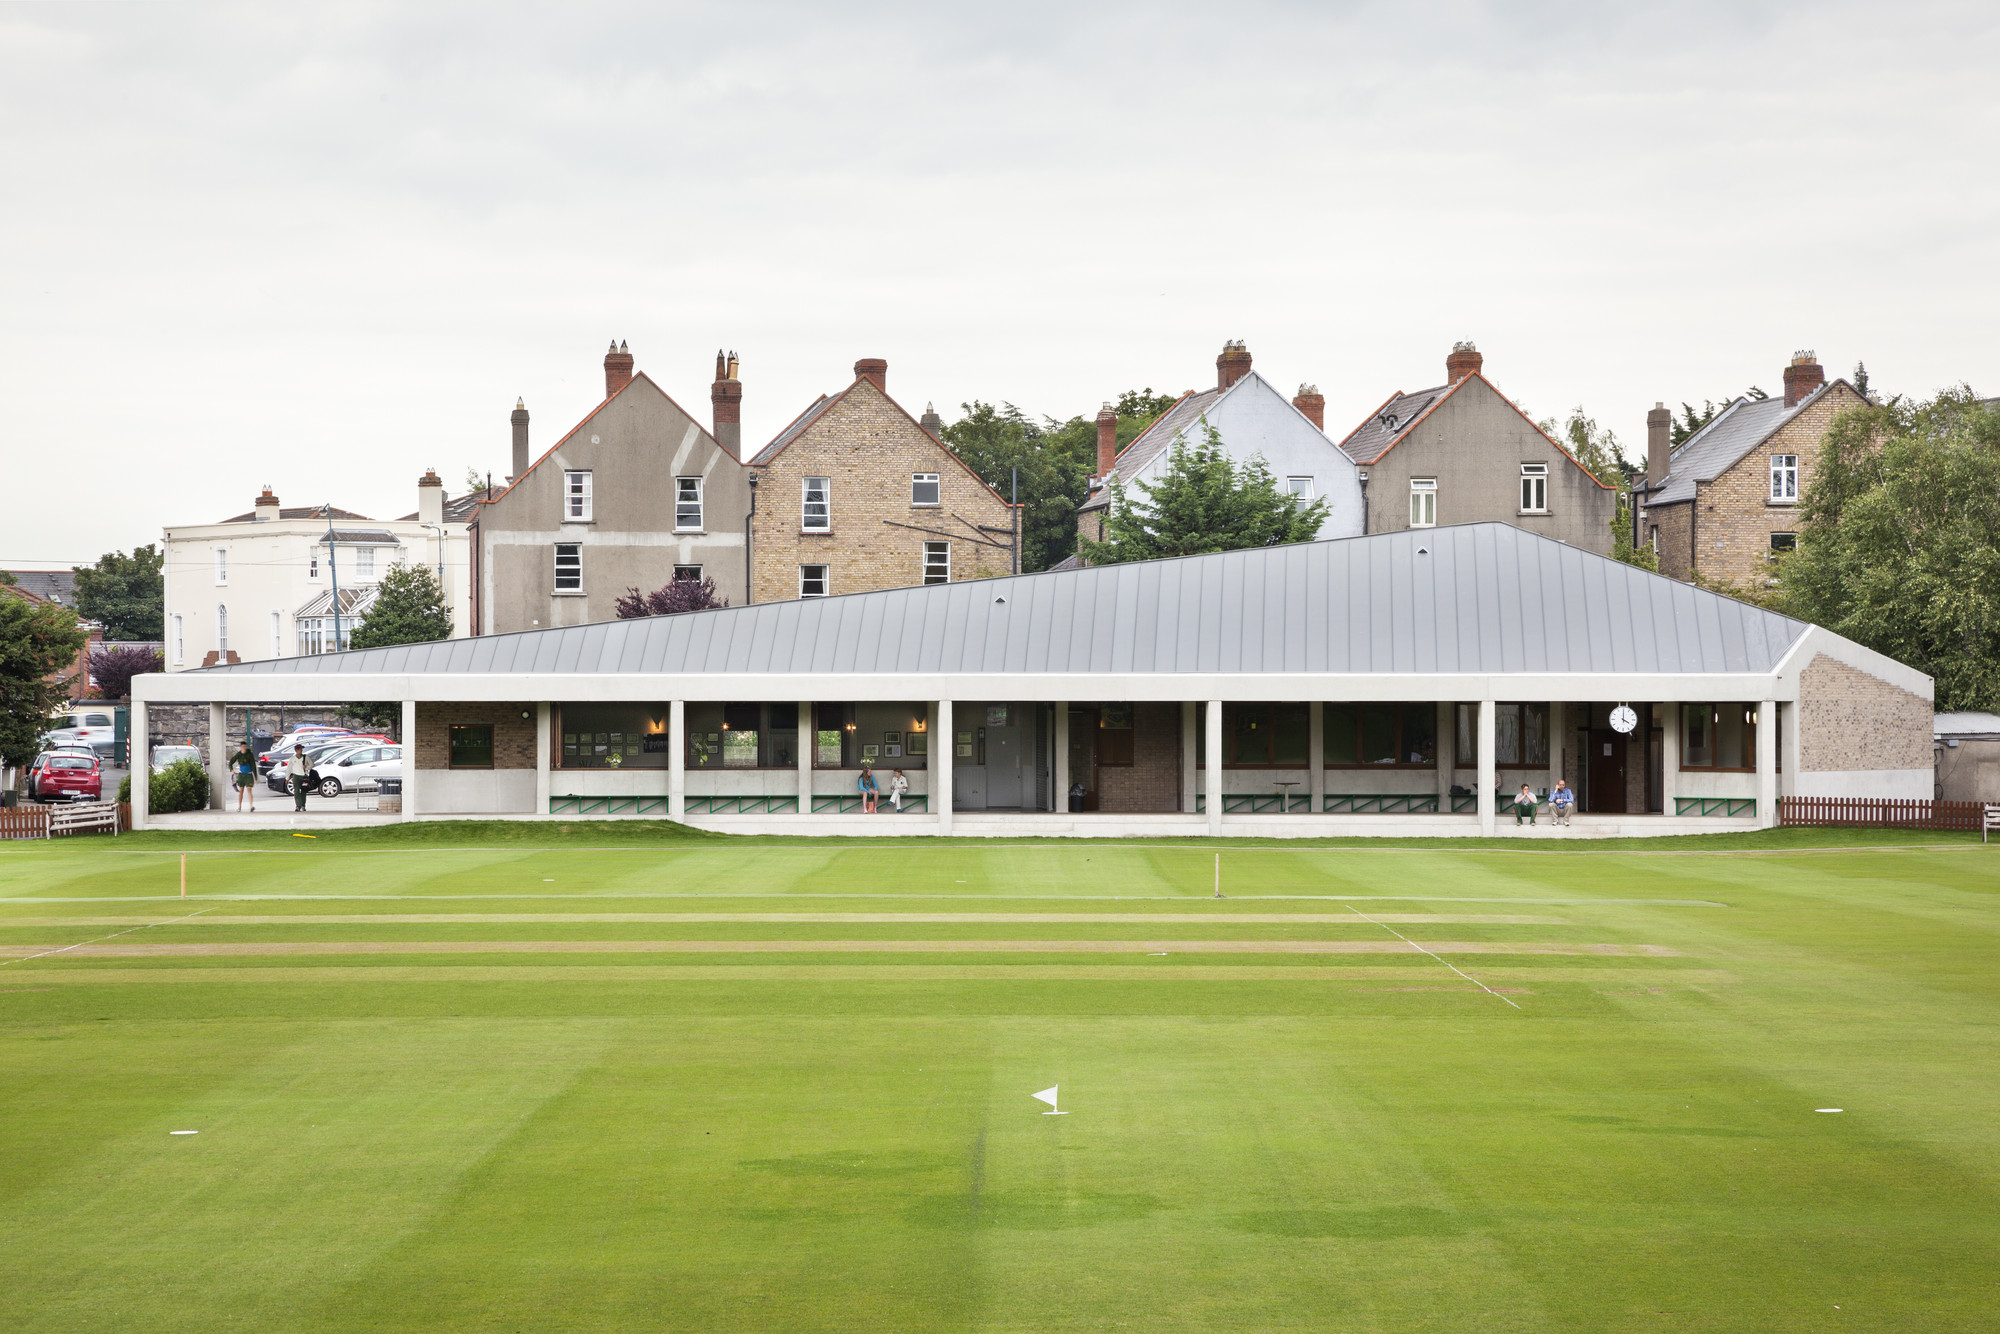 Merrion Cricket Club / TAKA Architects, © Alice Clancy